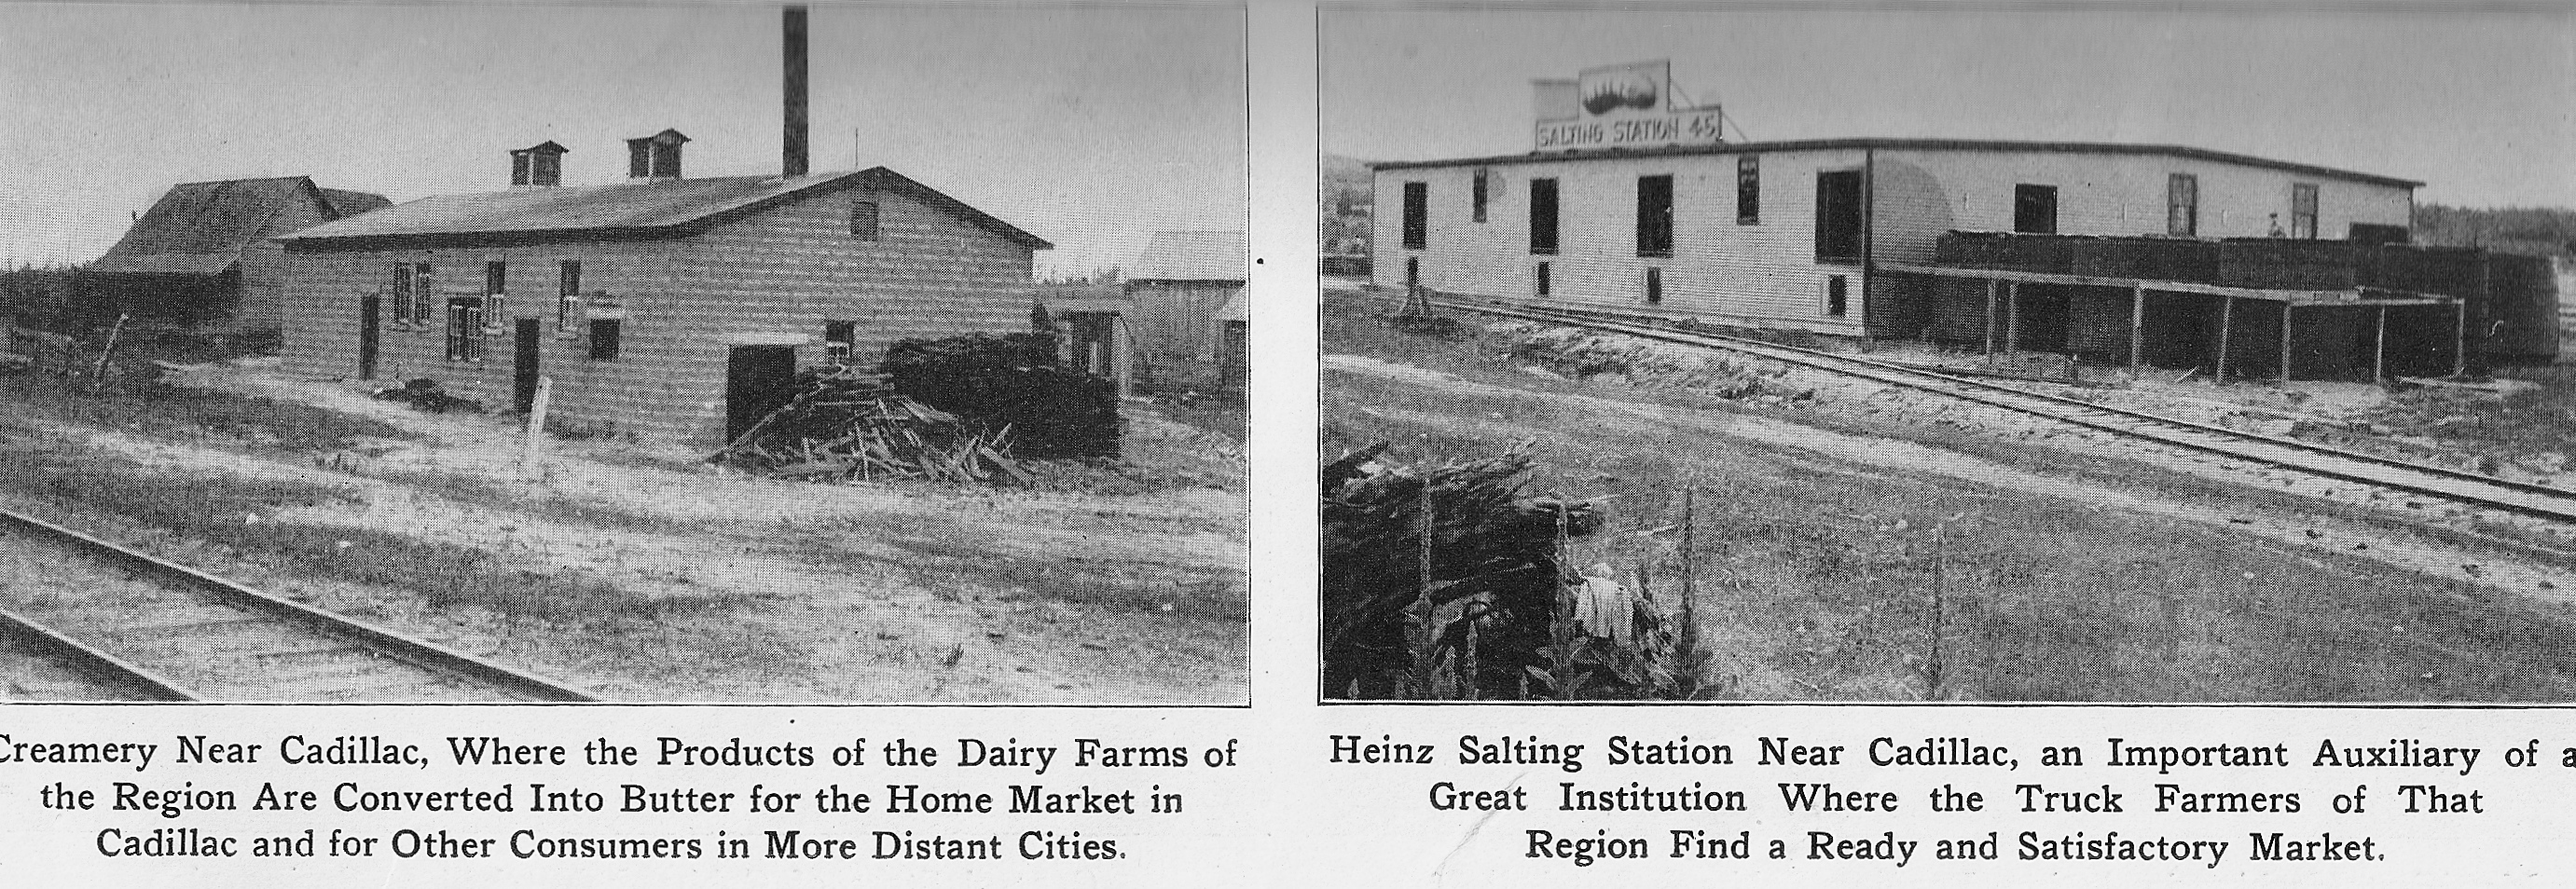 Creamery and a Salting Station